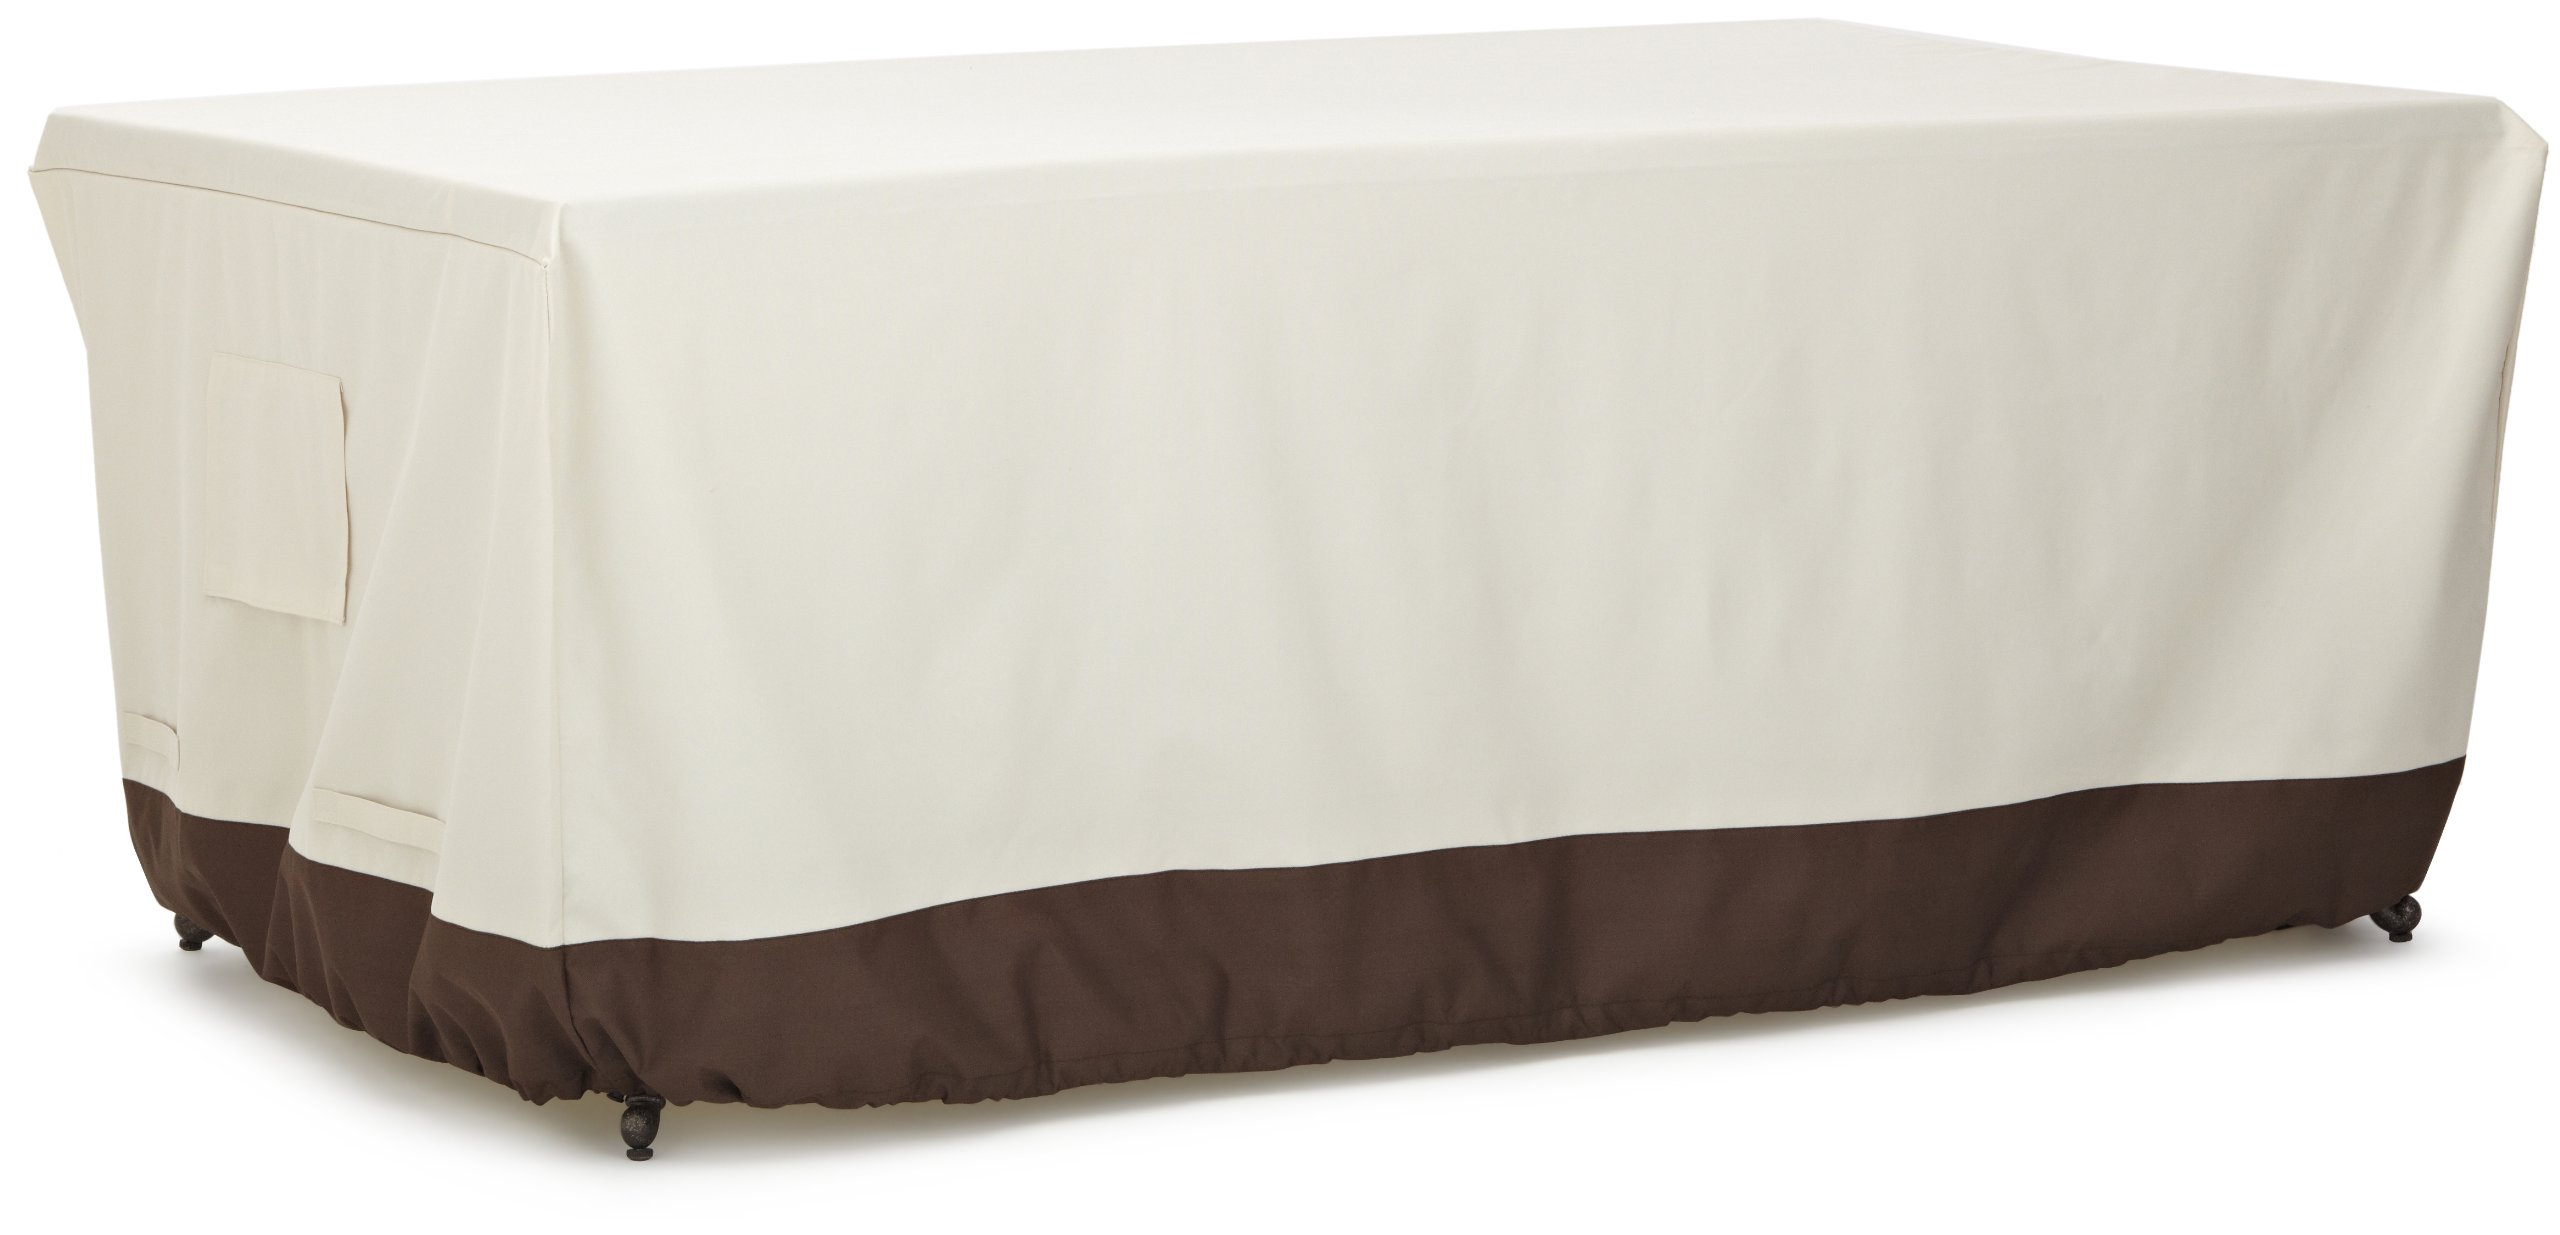 AmazonBasics Dining Table Outdoor Patio Furniture Cover, 72 Inch by AmazonBasics